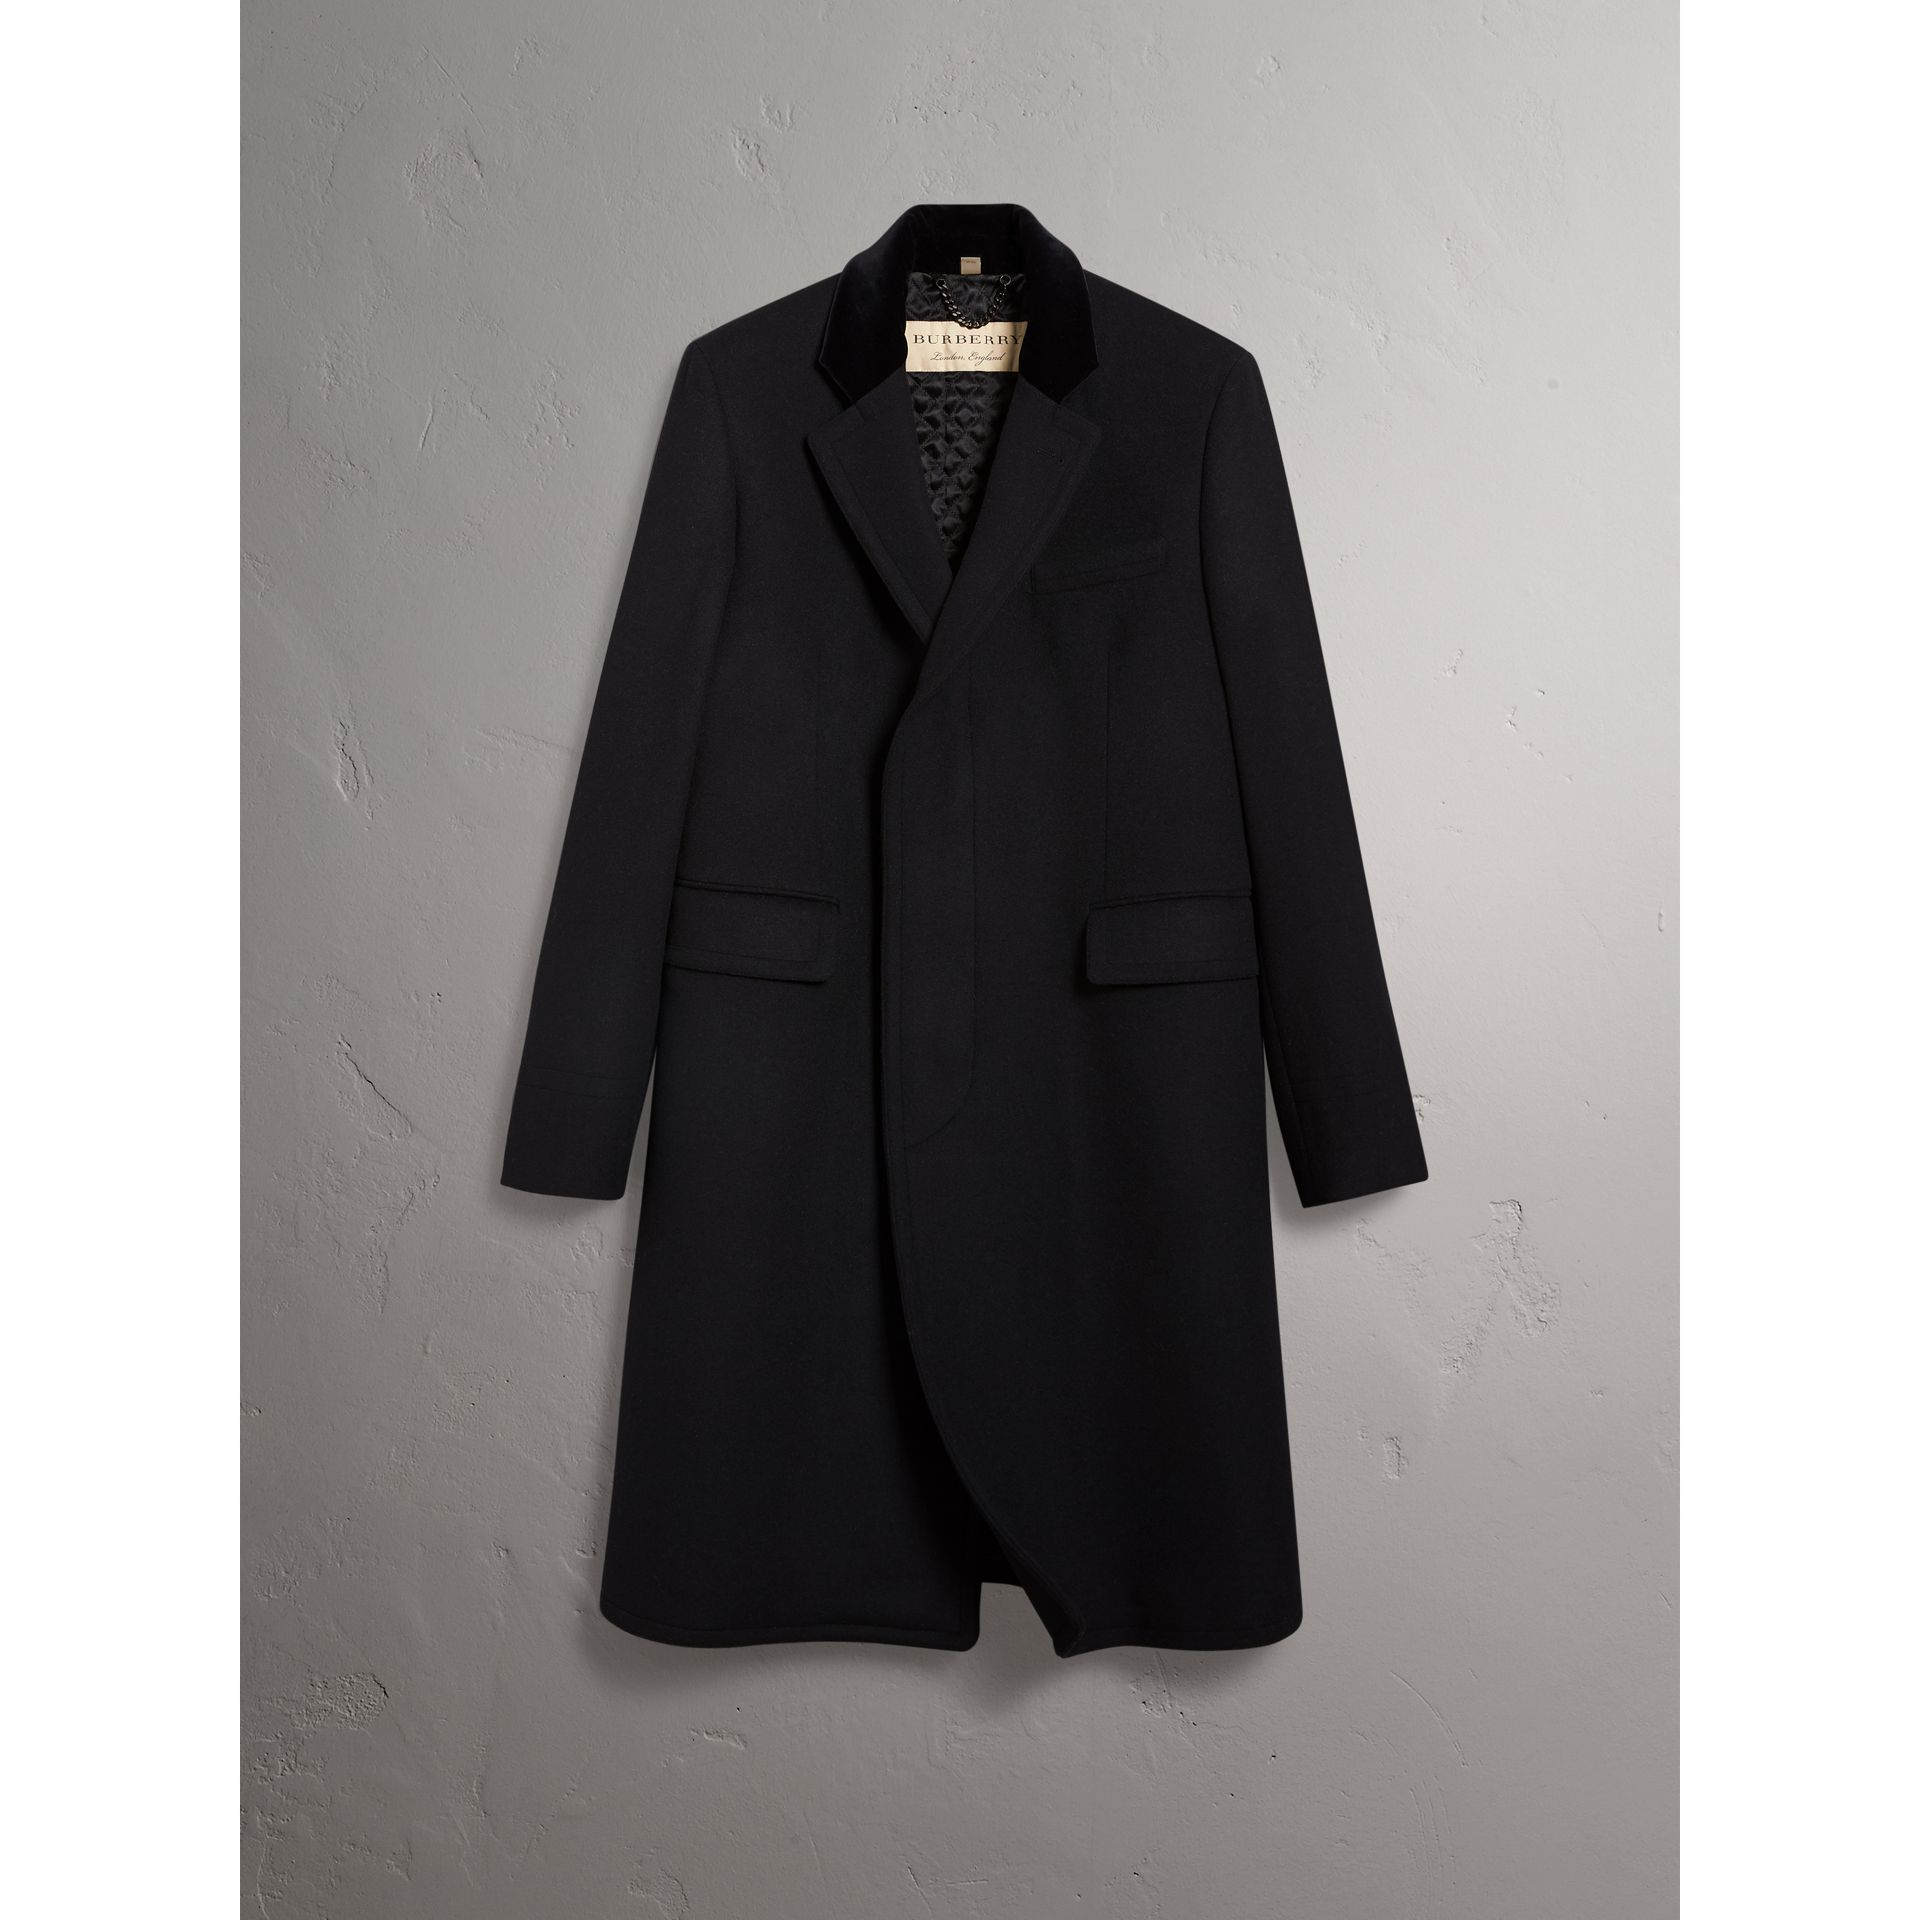 Burberry Black Velvet Collar Wool Cashmere Blend Riding Coat